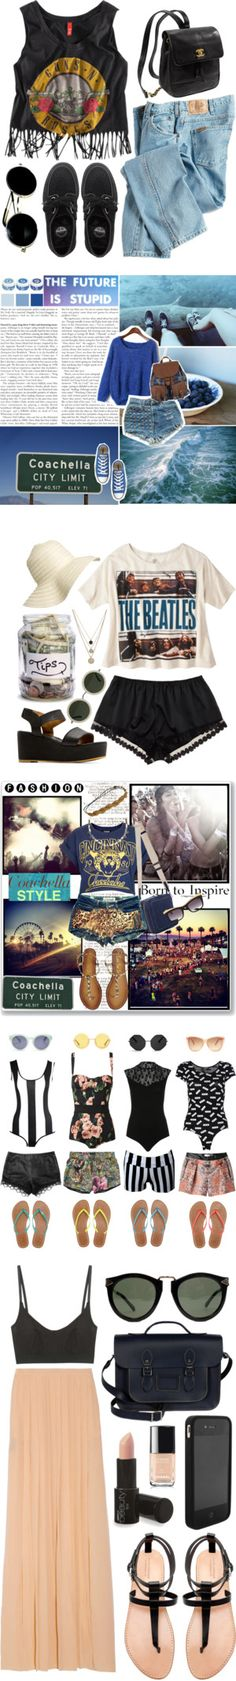 """ERMAHGERD Coachella Starts Tomorrow! Here, 6 Outfit Ideas From Members"" by polyvore-editorial ❤ liked on Polyvore"